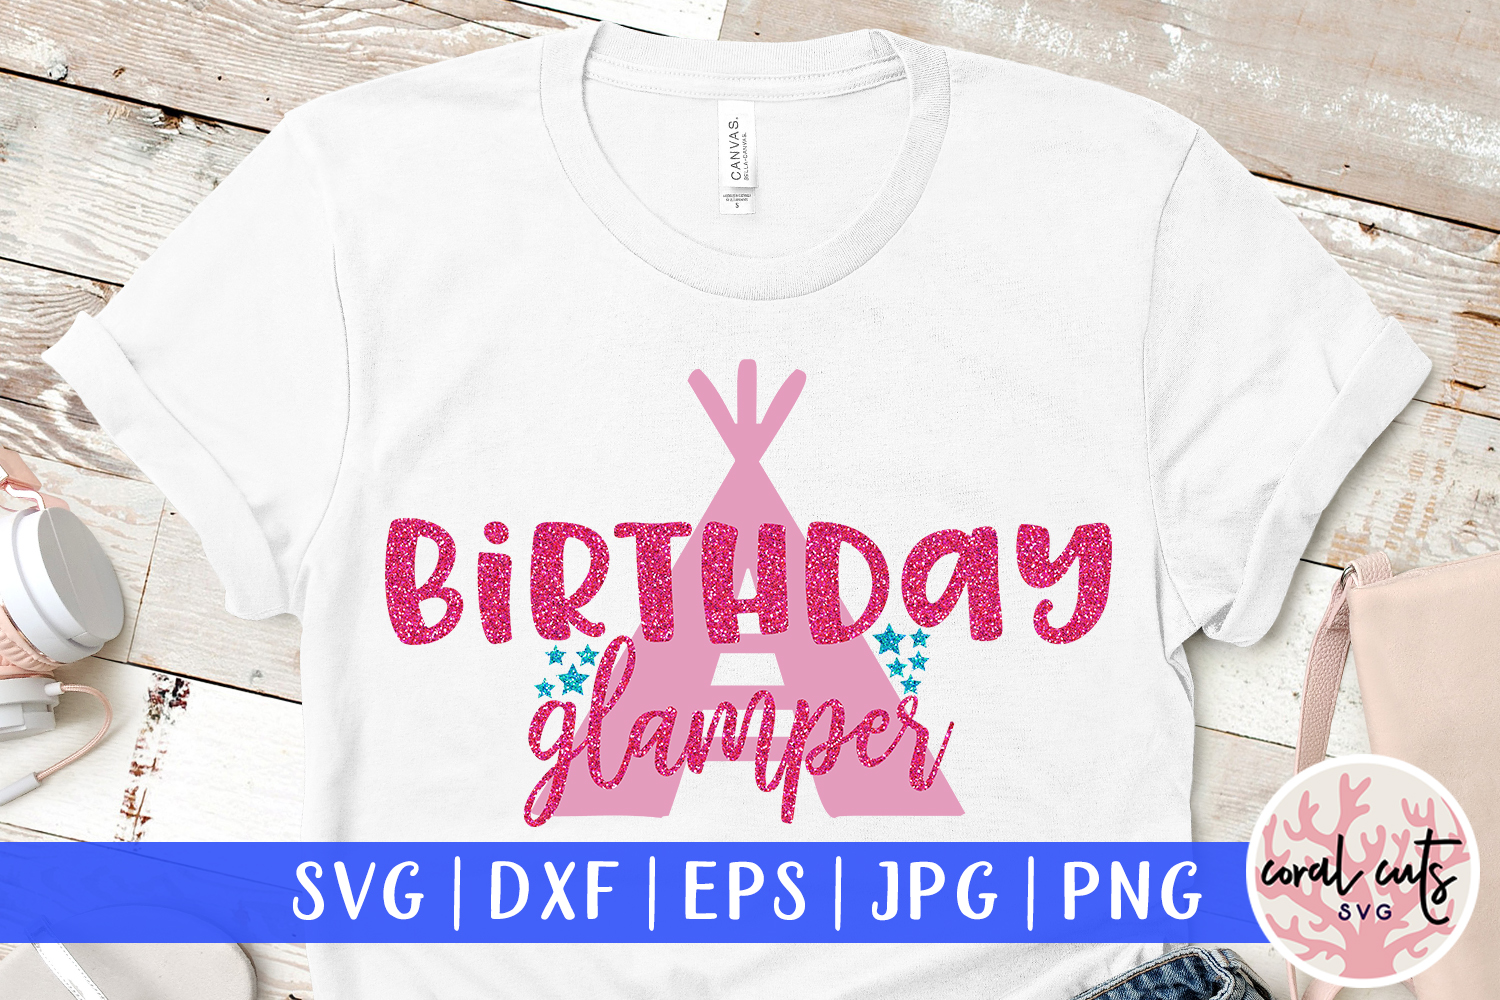 Download Free Birthday Glamper Graphic By Coralcutssvg Creative Fabrica for Cricut Explore, Silhouette and other cutting machines.